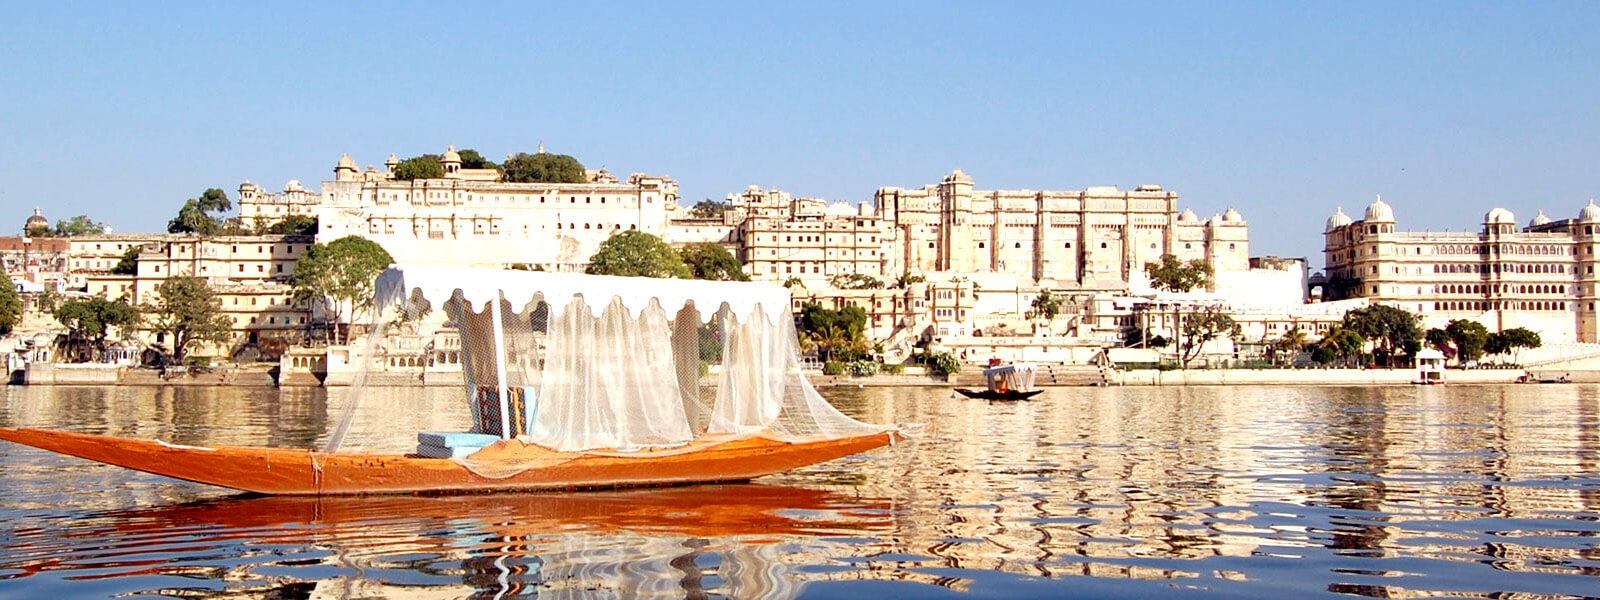 Udaipur-Sightseeing-Tour